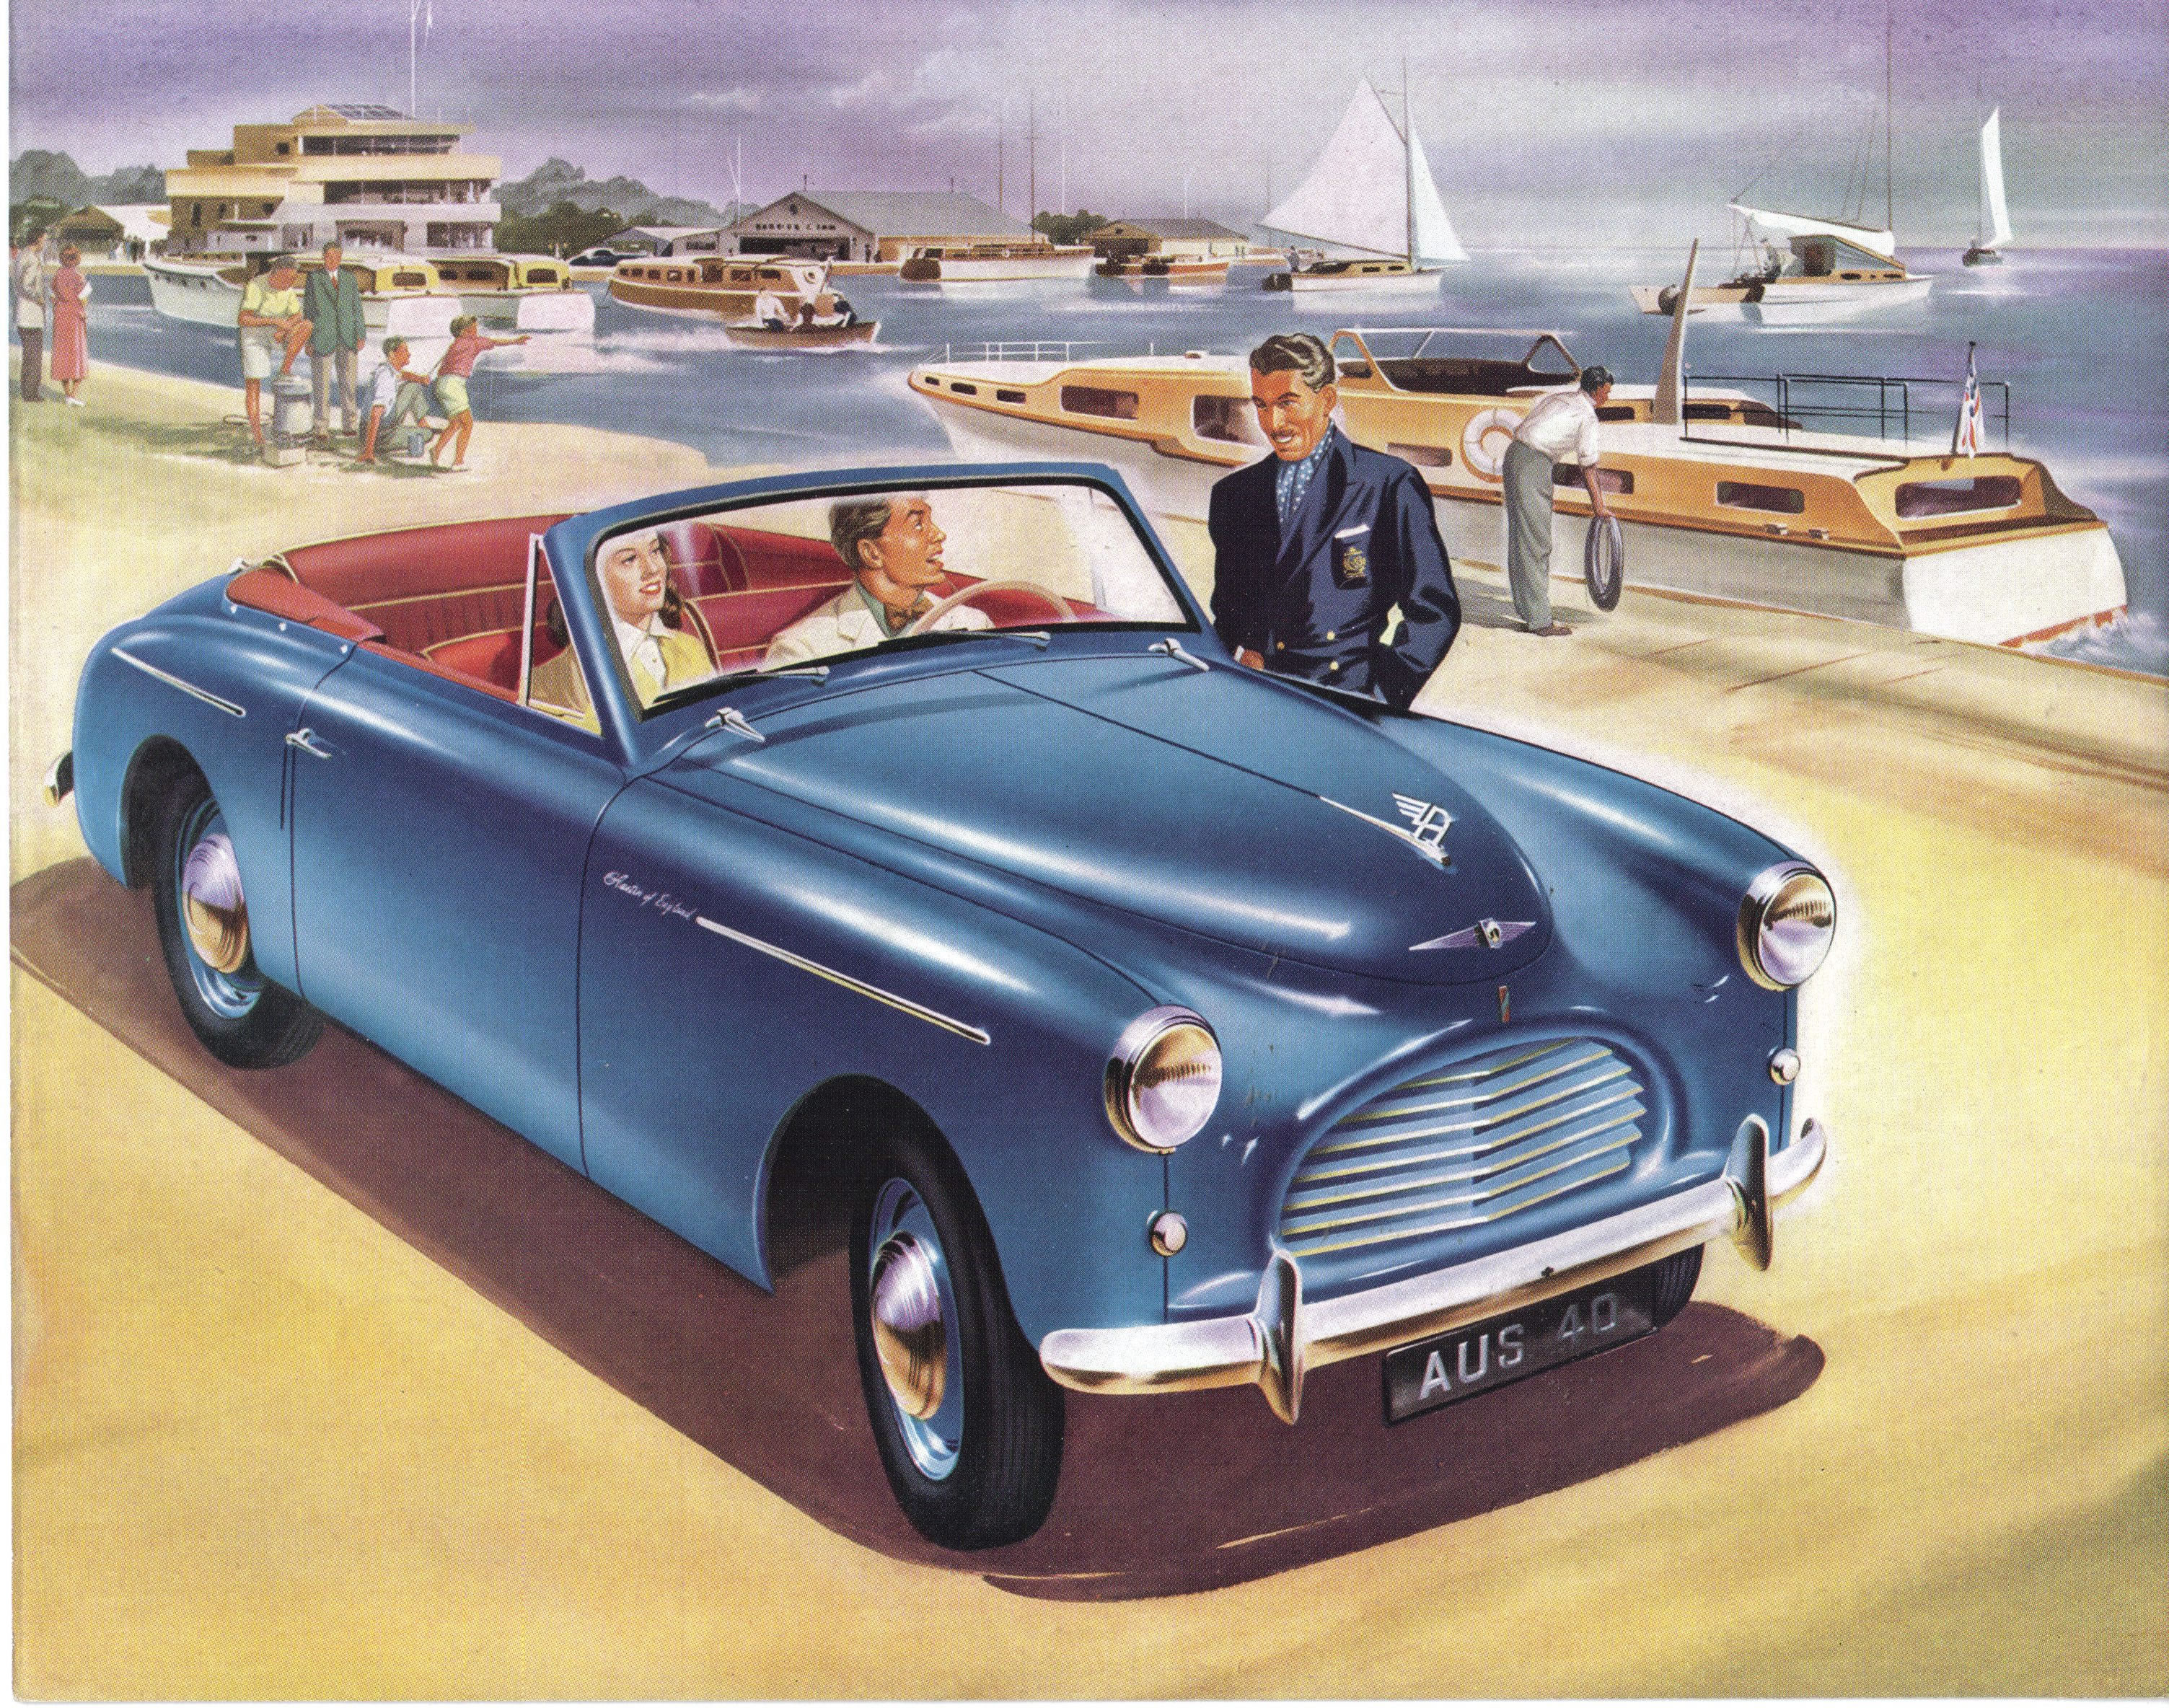 Car Brochures Austin A40 Brochure Austin A40 Sports 2jpg – Old Car Brochure